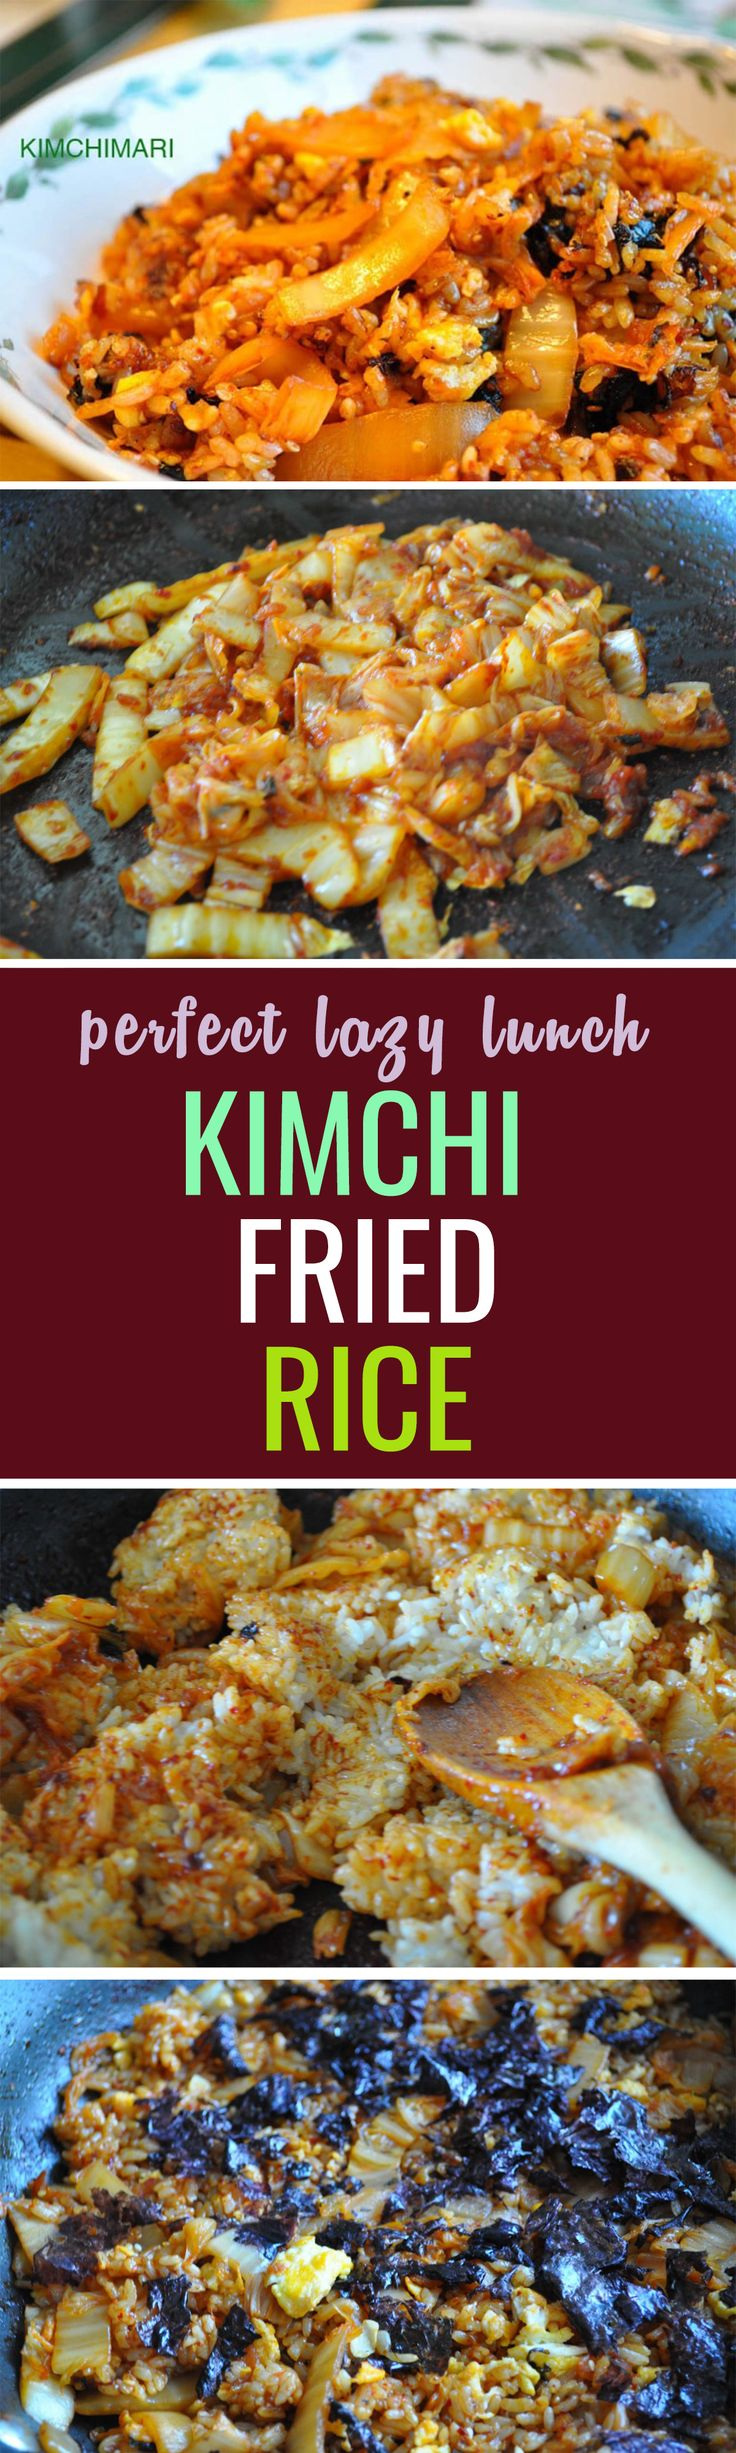 Best 25 korean food recipes ideas on pinterest korean dishes quick one pan kimchi fried rice will surely bring happiness to your tummy forumfinder Image collections